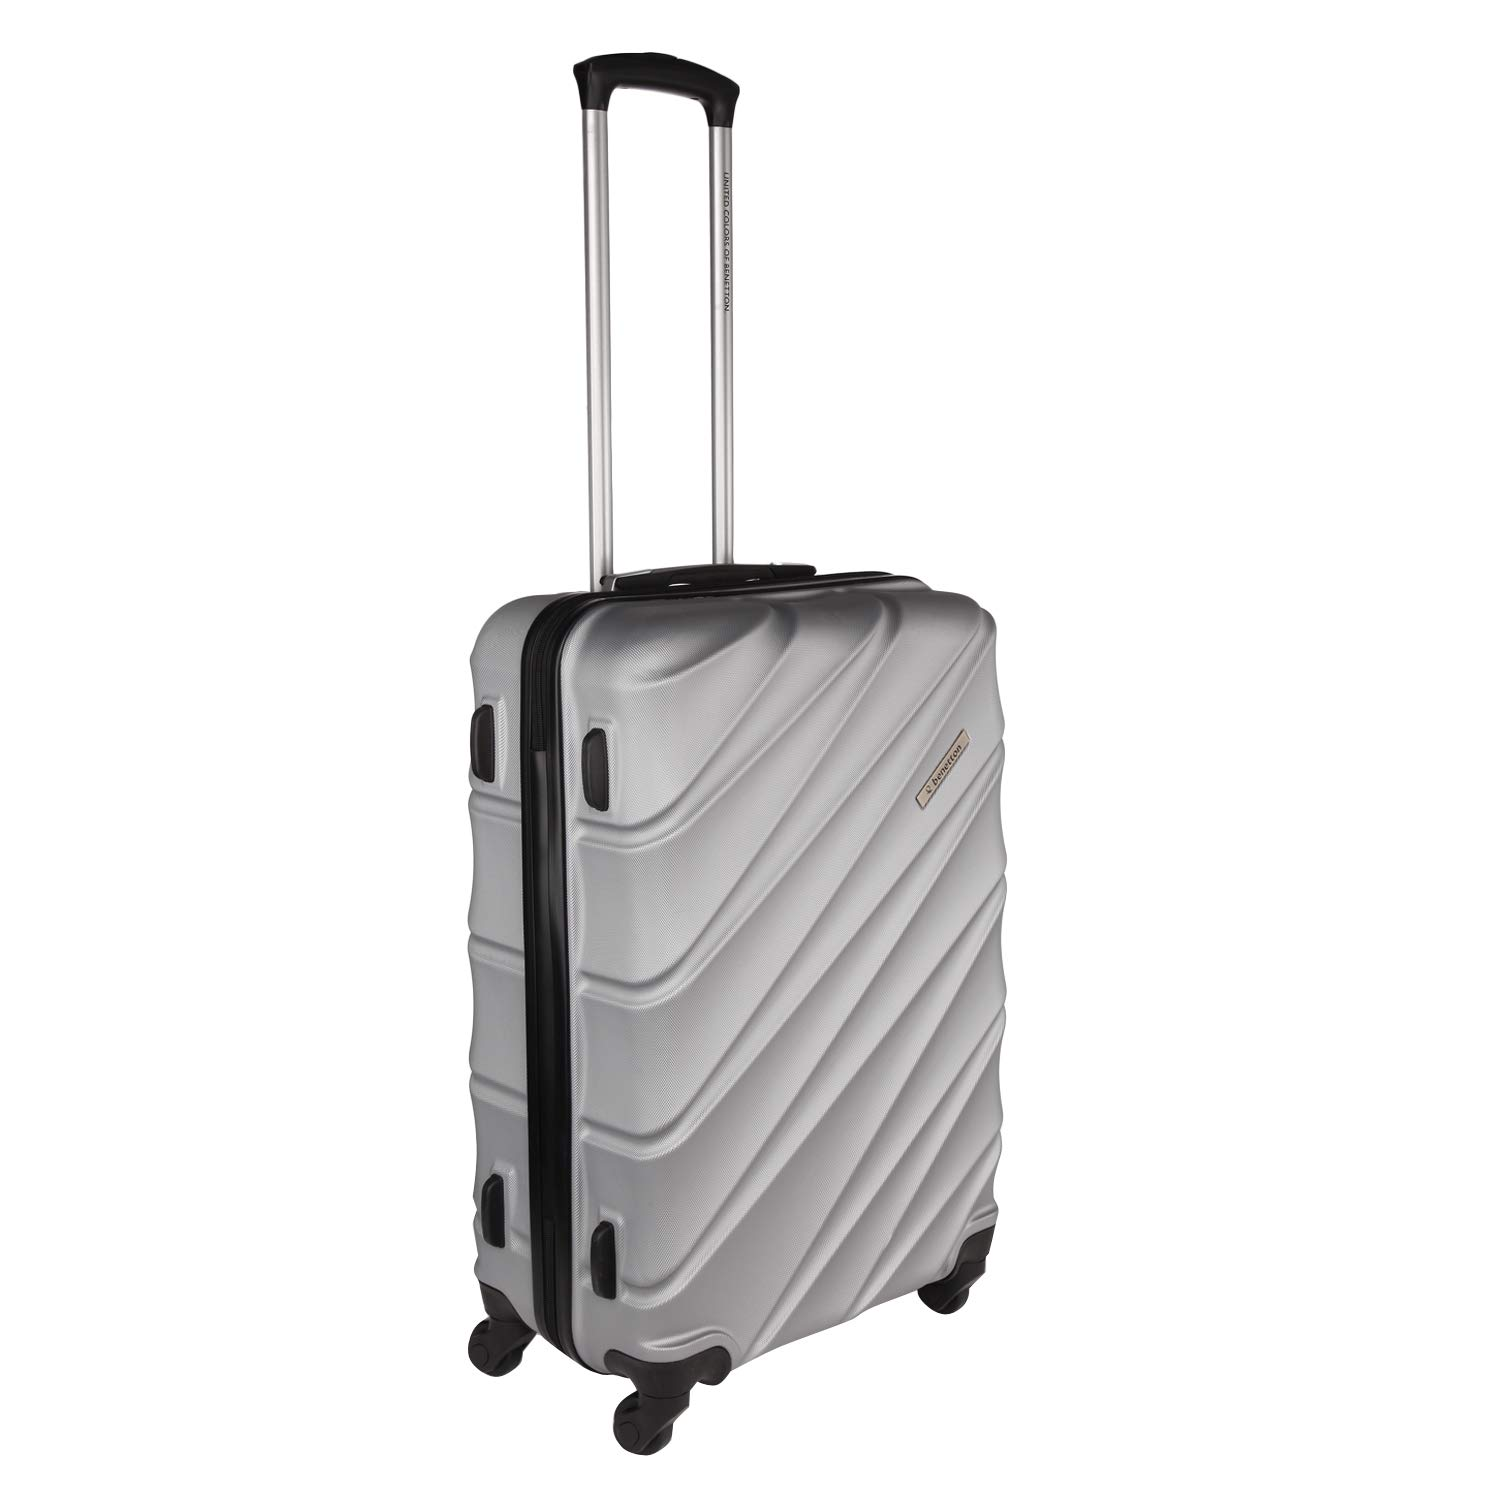 United Colors of Benetton Roadster Hardcase Luggage ABS 77